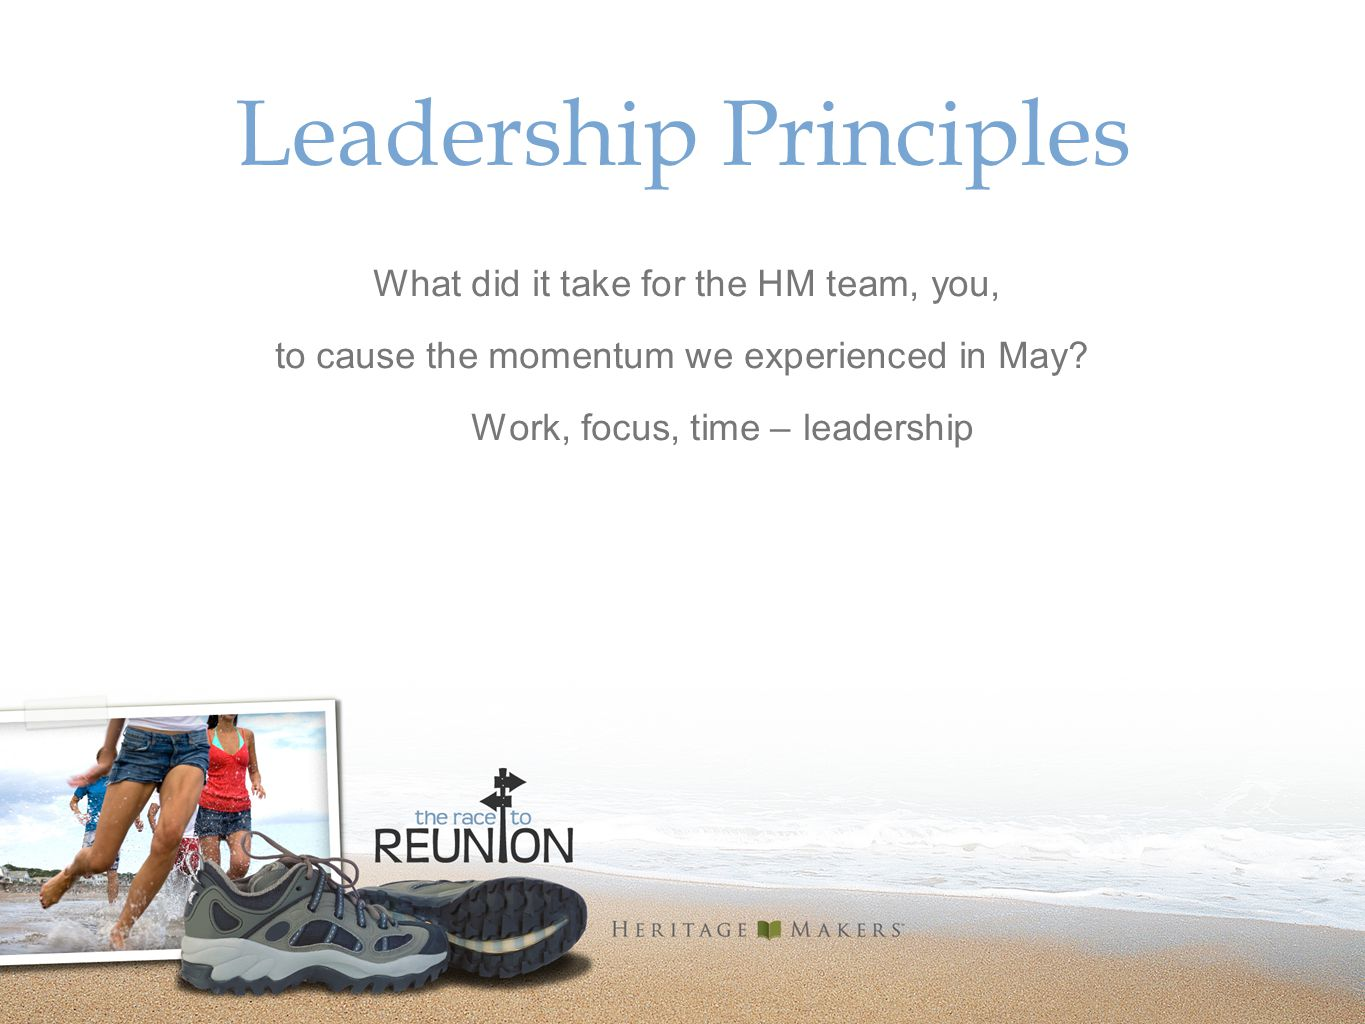 Leadership Principles What did it take for the HM team, you, to cause the momentum we experienced in May.